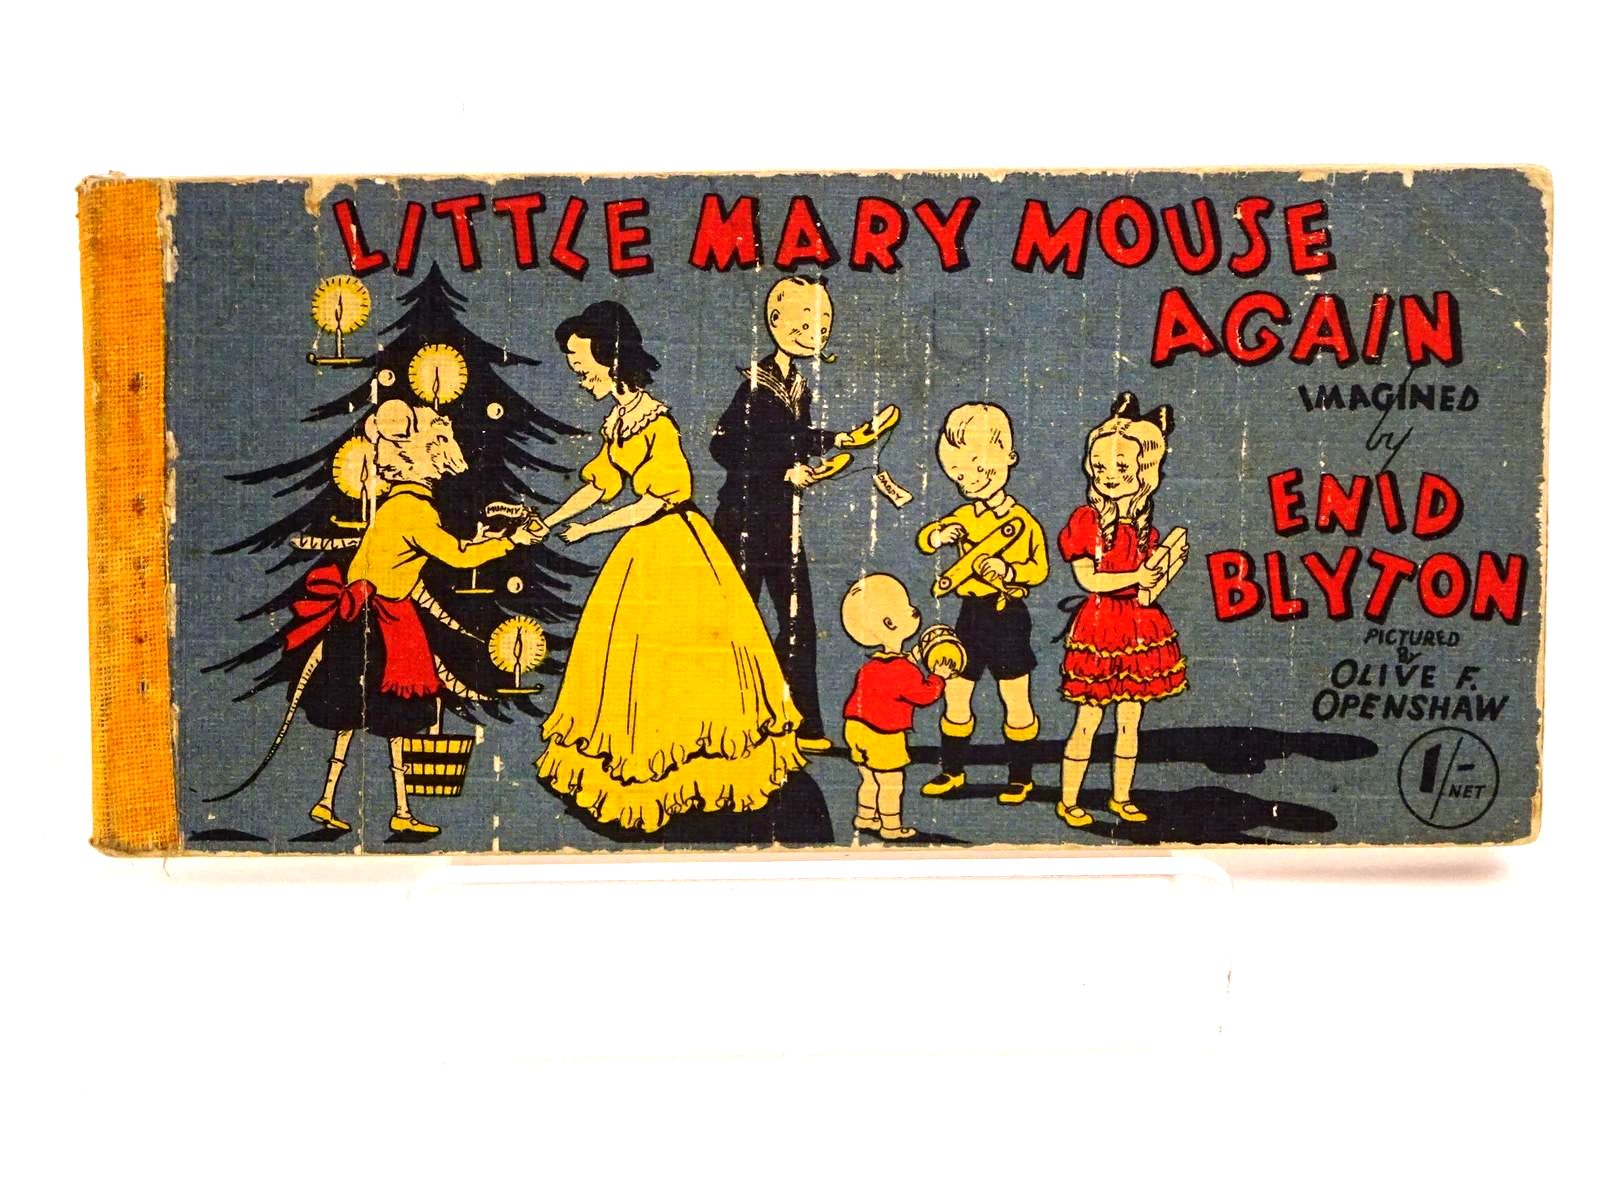 Photo of LITTLE MARY MOUSE AGAIN written by Blyton, Enid illustrated by Openshaw, Olive F. published by Brockhampton Press (STOCK CODE: 1318184)  for sale by Stella & Rose's Books